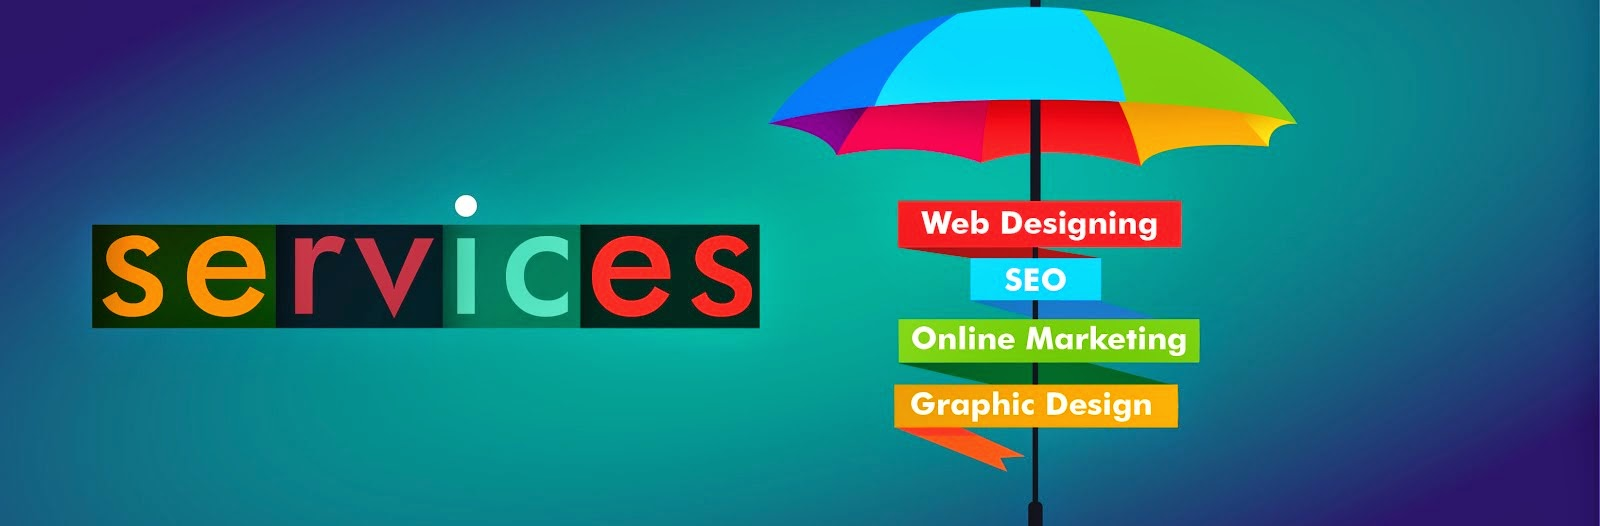 Web Design company in Chennai, SEO, Graphic Design